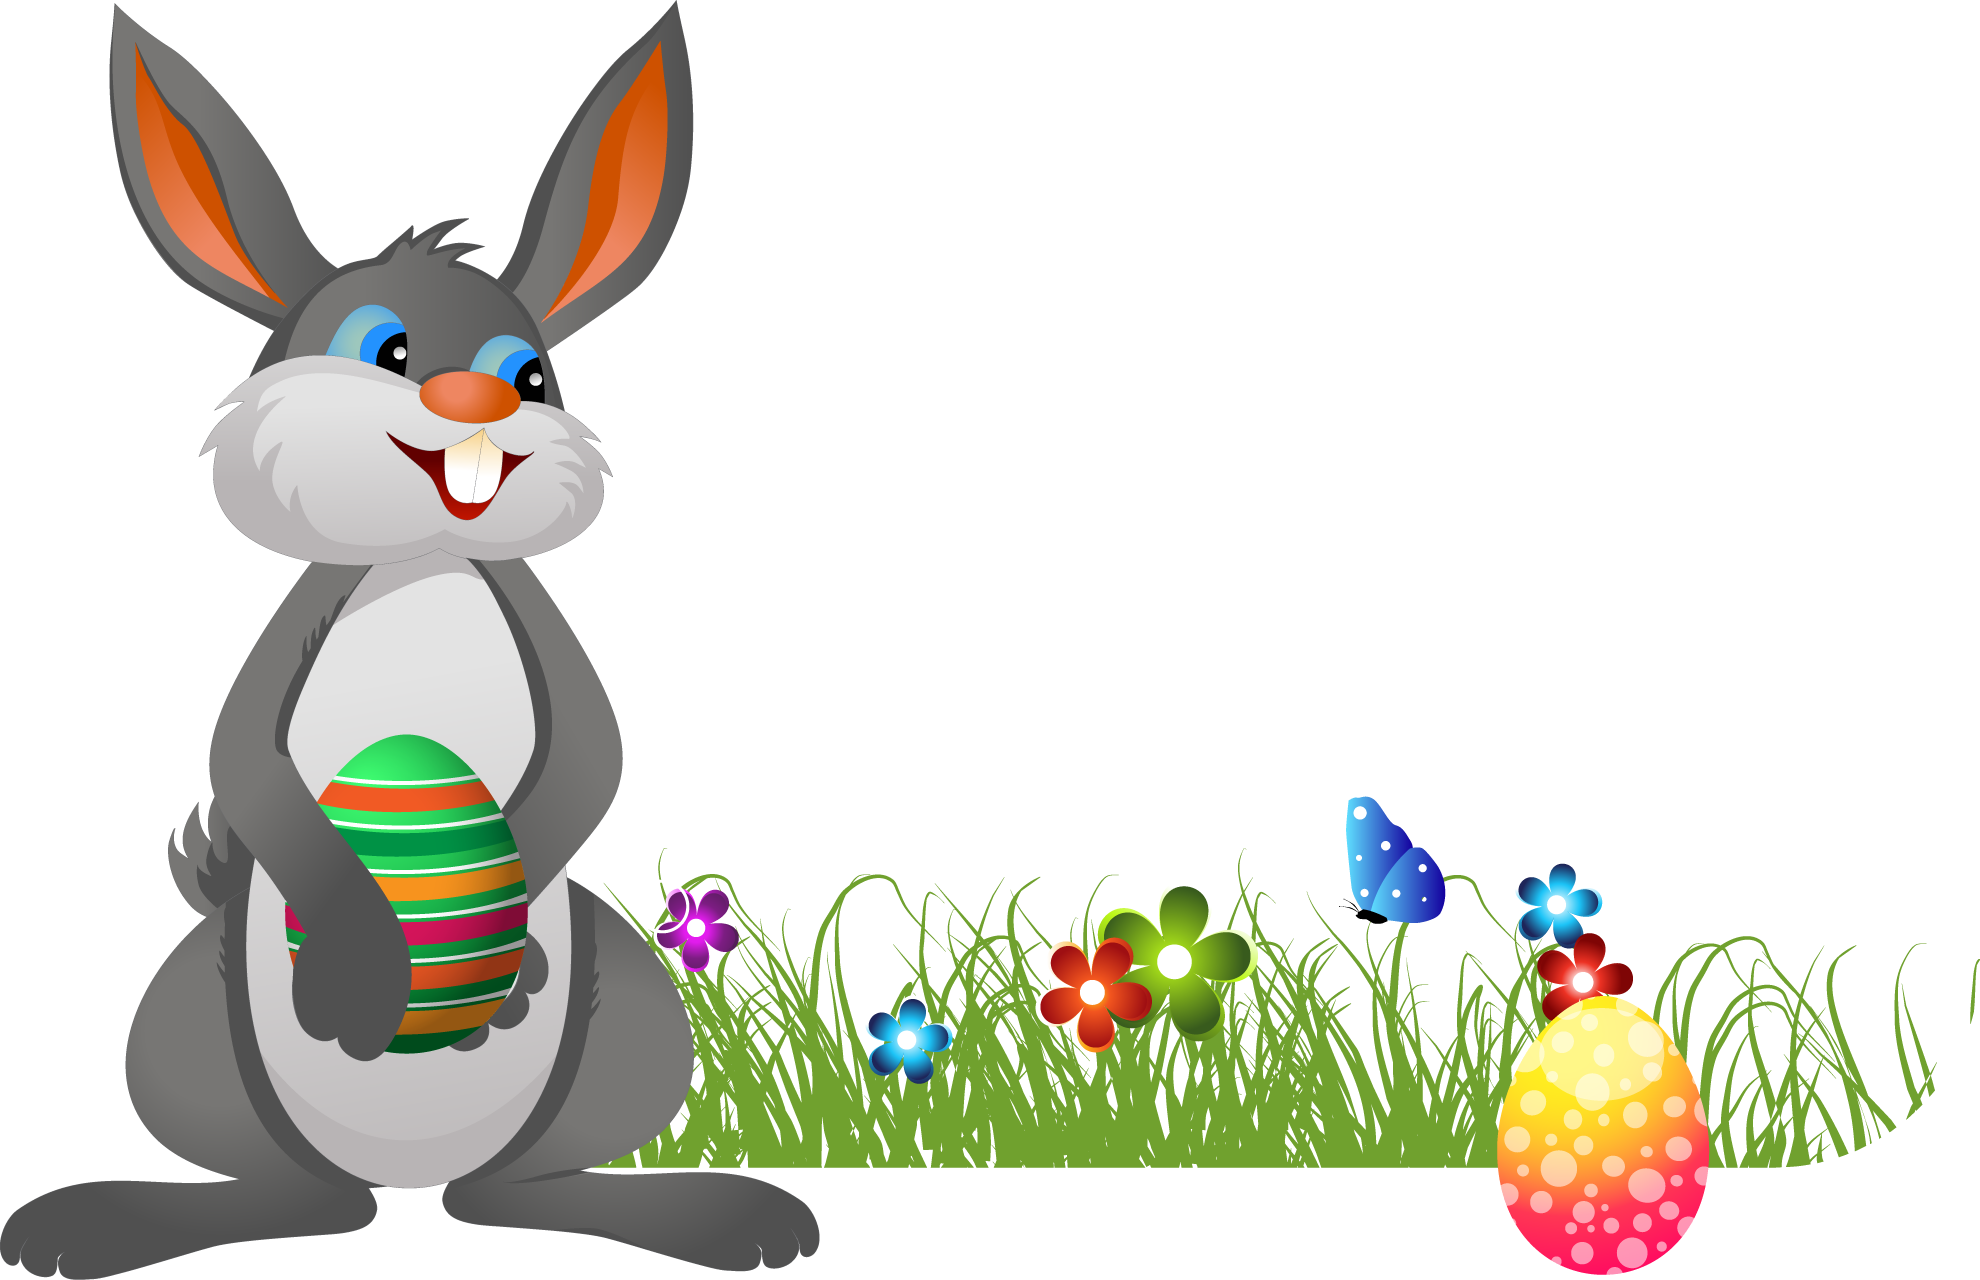 Hunting clipart file. Easter egg hunts swansboro